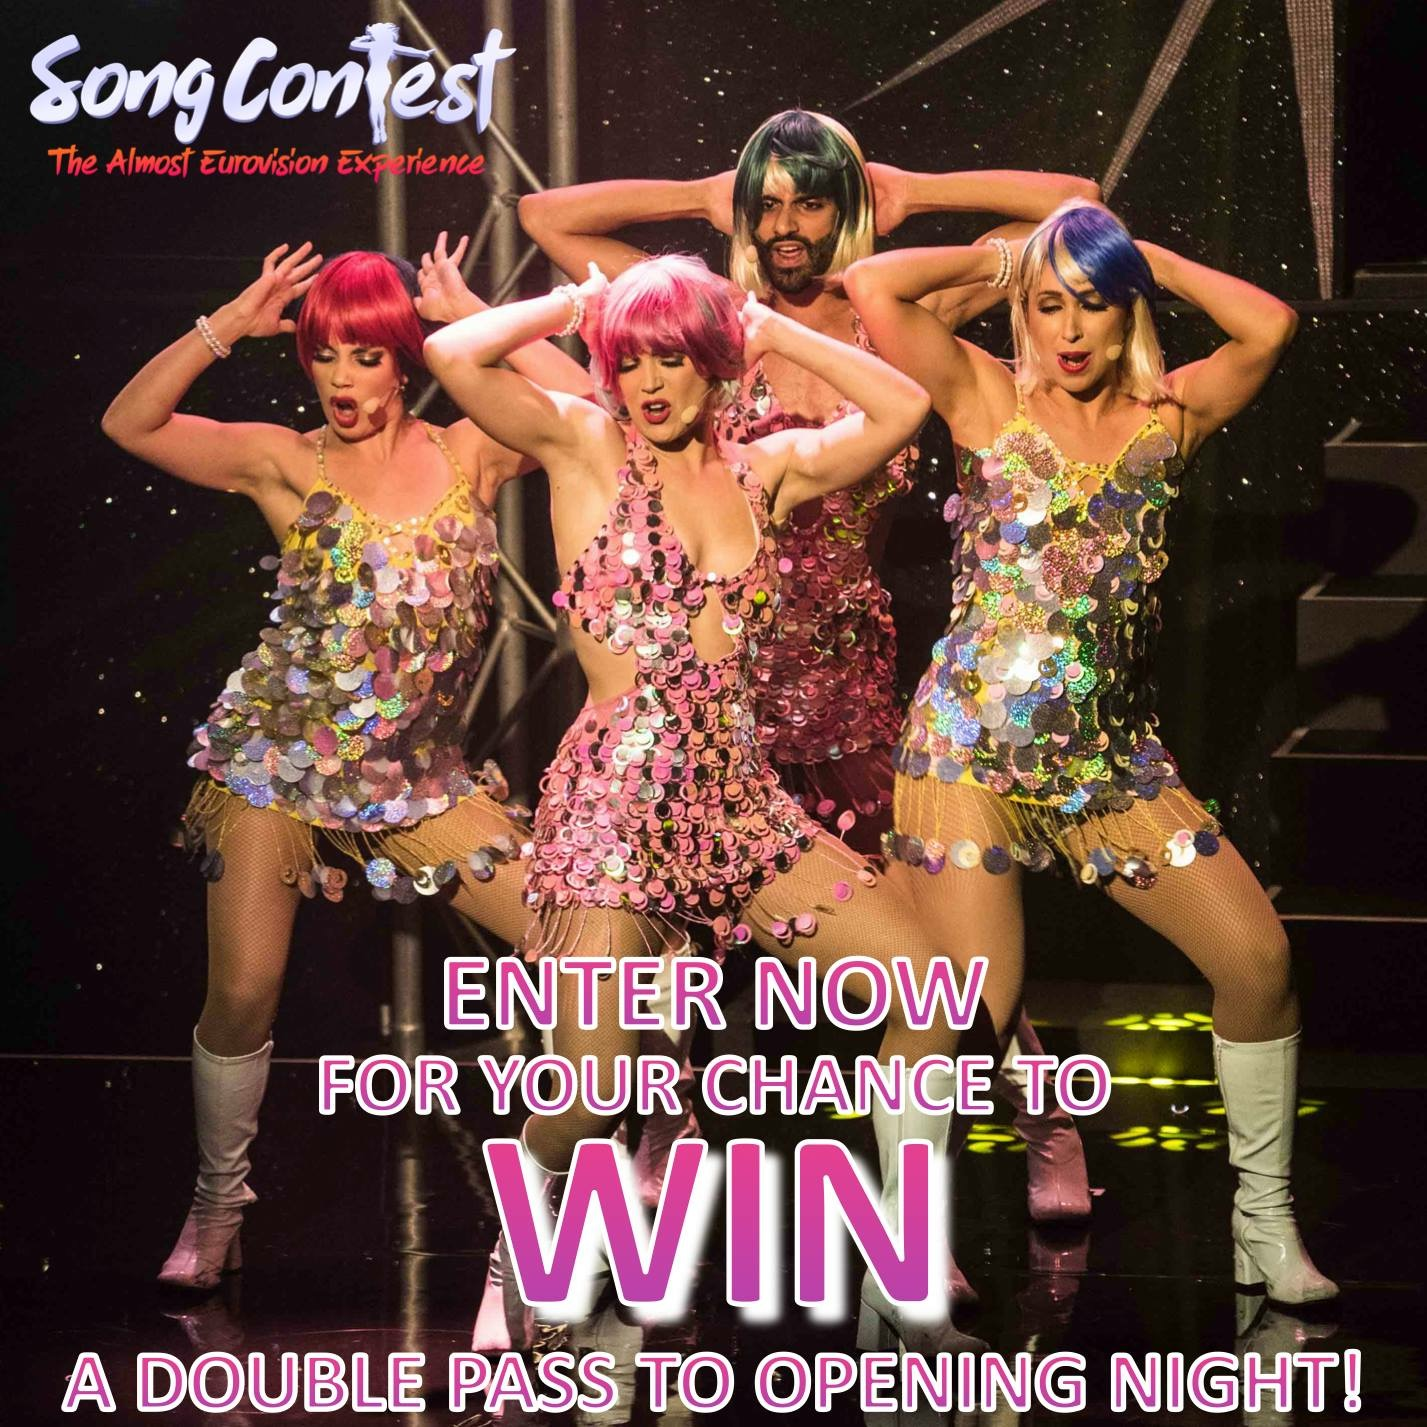 Song Contest - Eurovision Experience